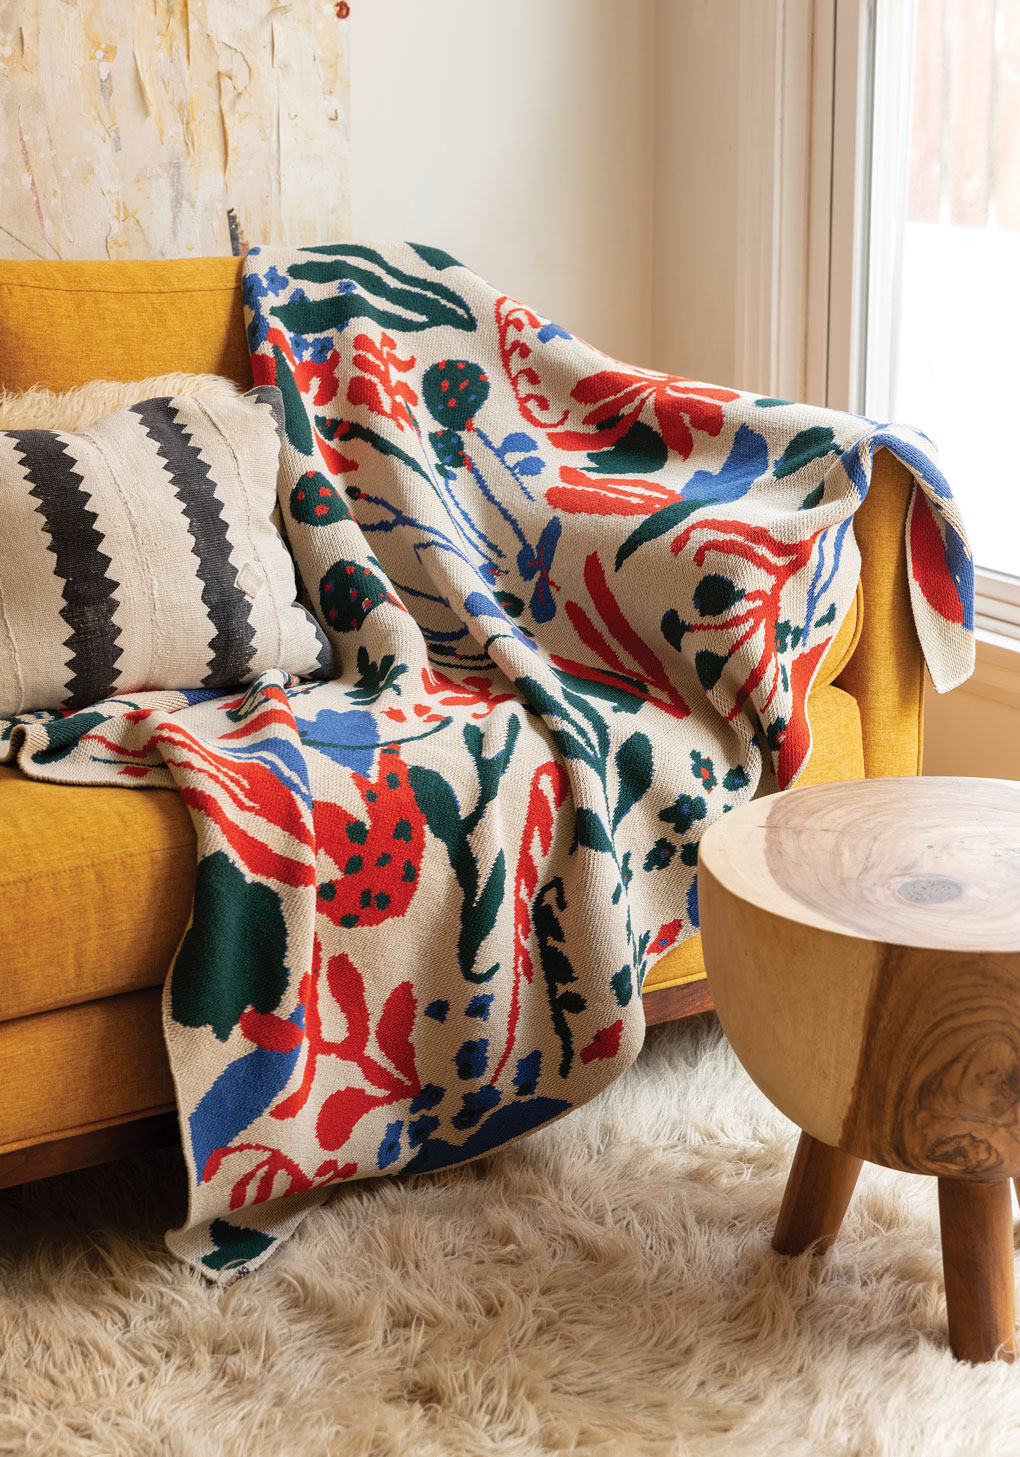 Mustard colored couch with a colorful and bold throw blanket draped over the arm.